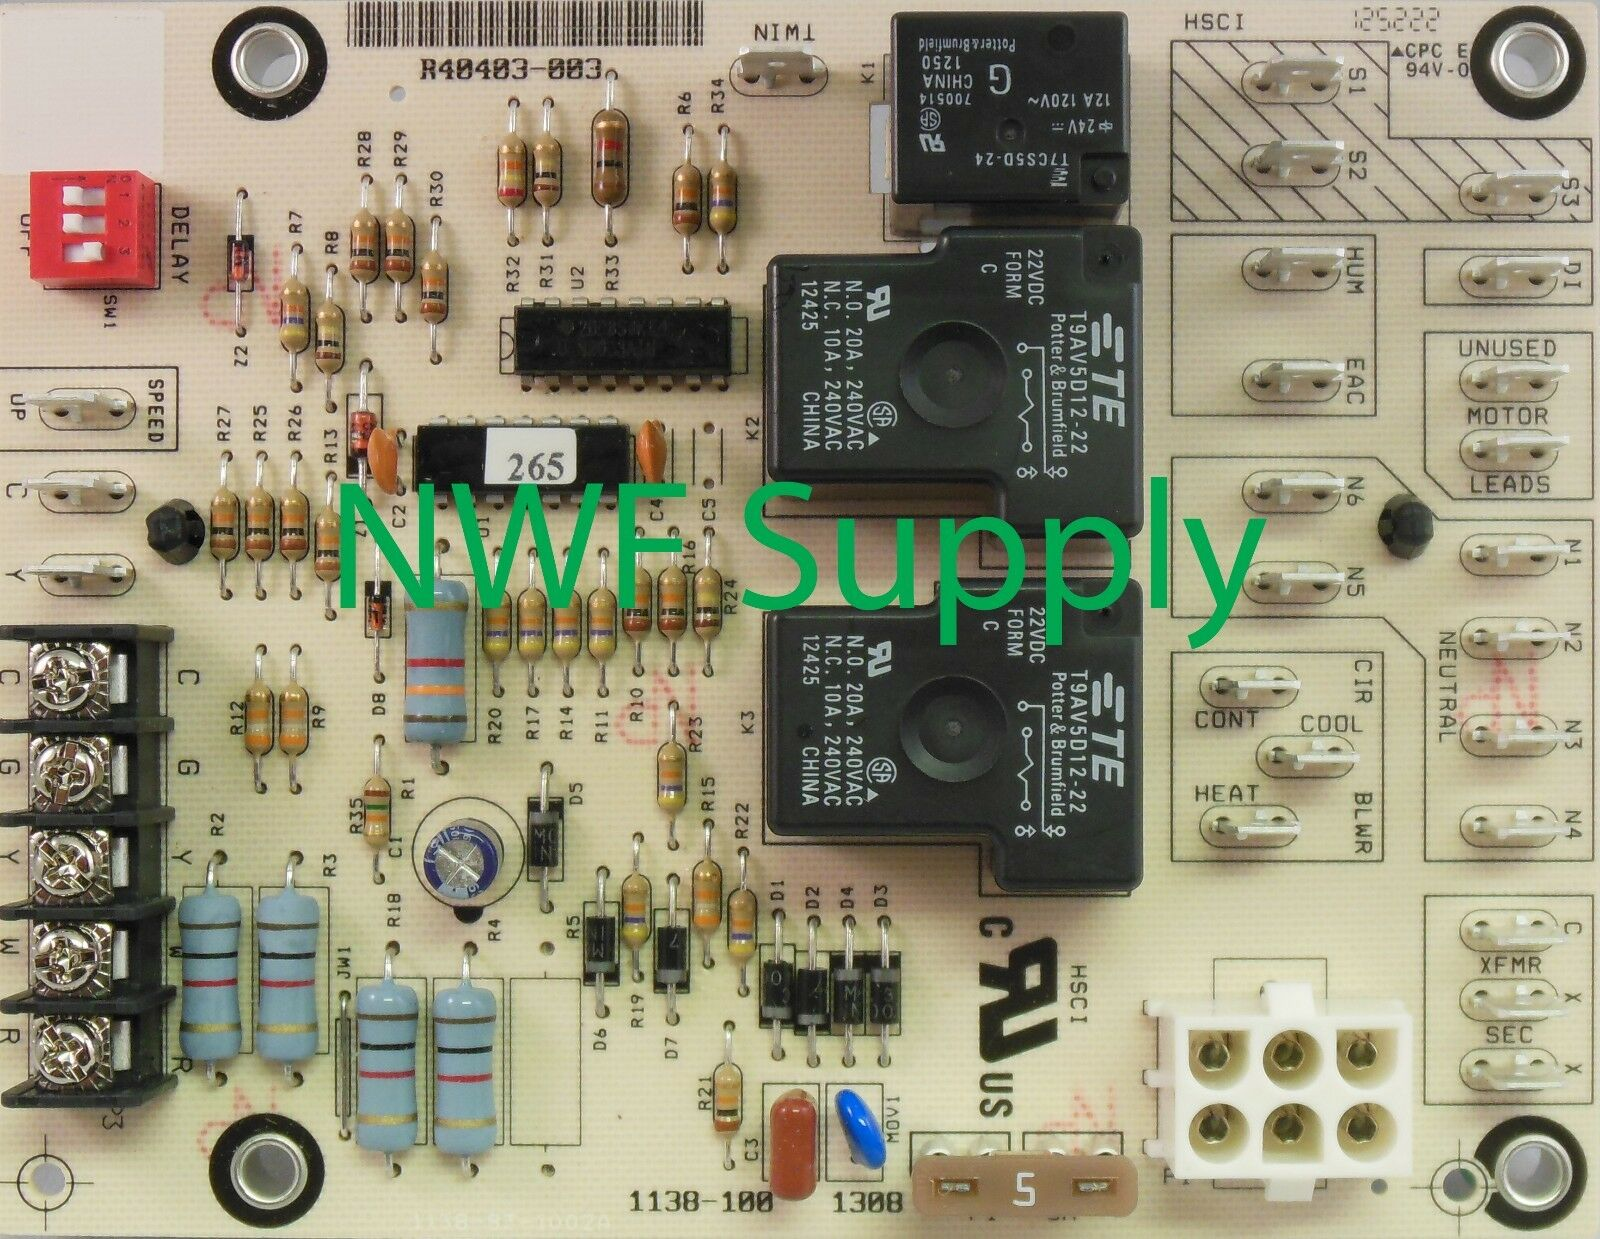 Honeywell Fan Control Furnace Circuit Board St9120c4008 9500 Trane American Standard 3 Limit Switch L260 30f C340056p07 1 Of 1only 2 Available